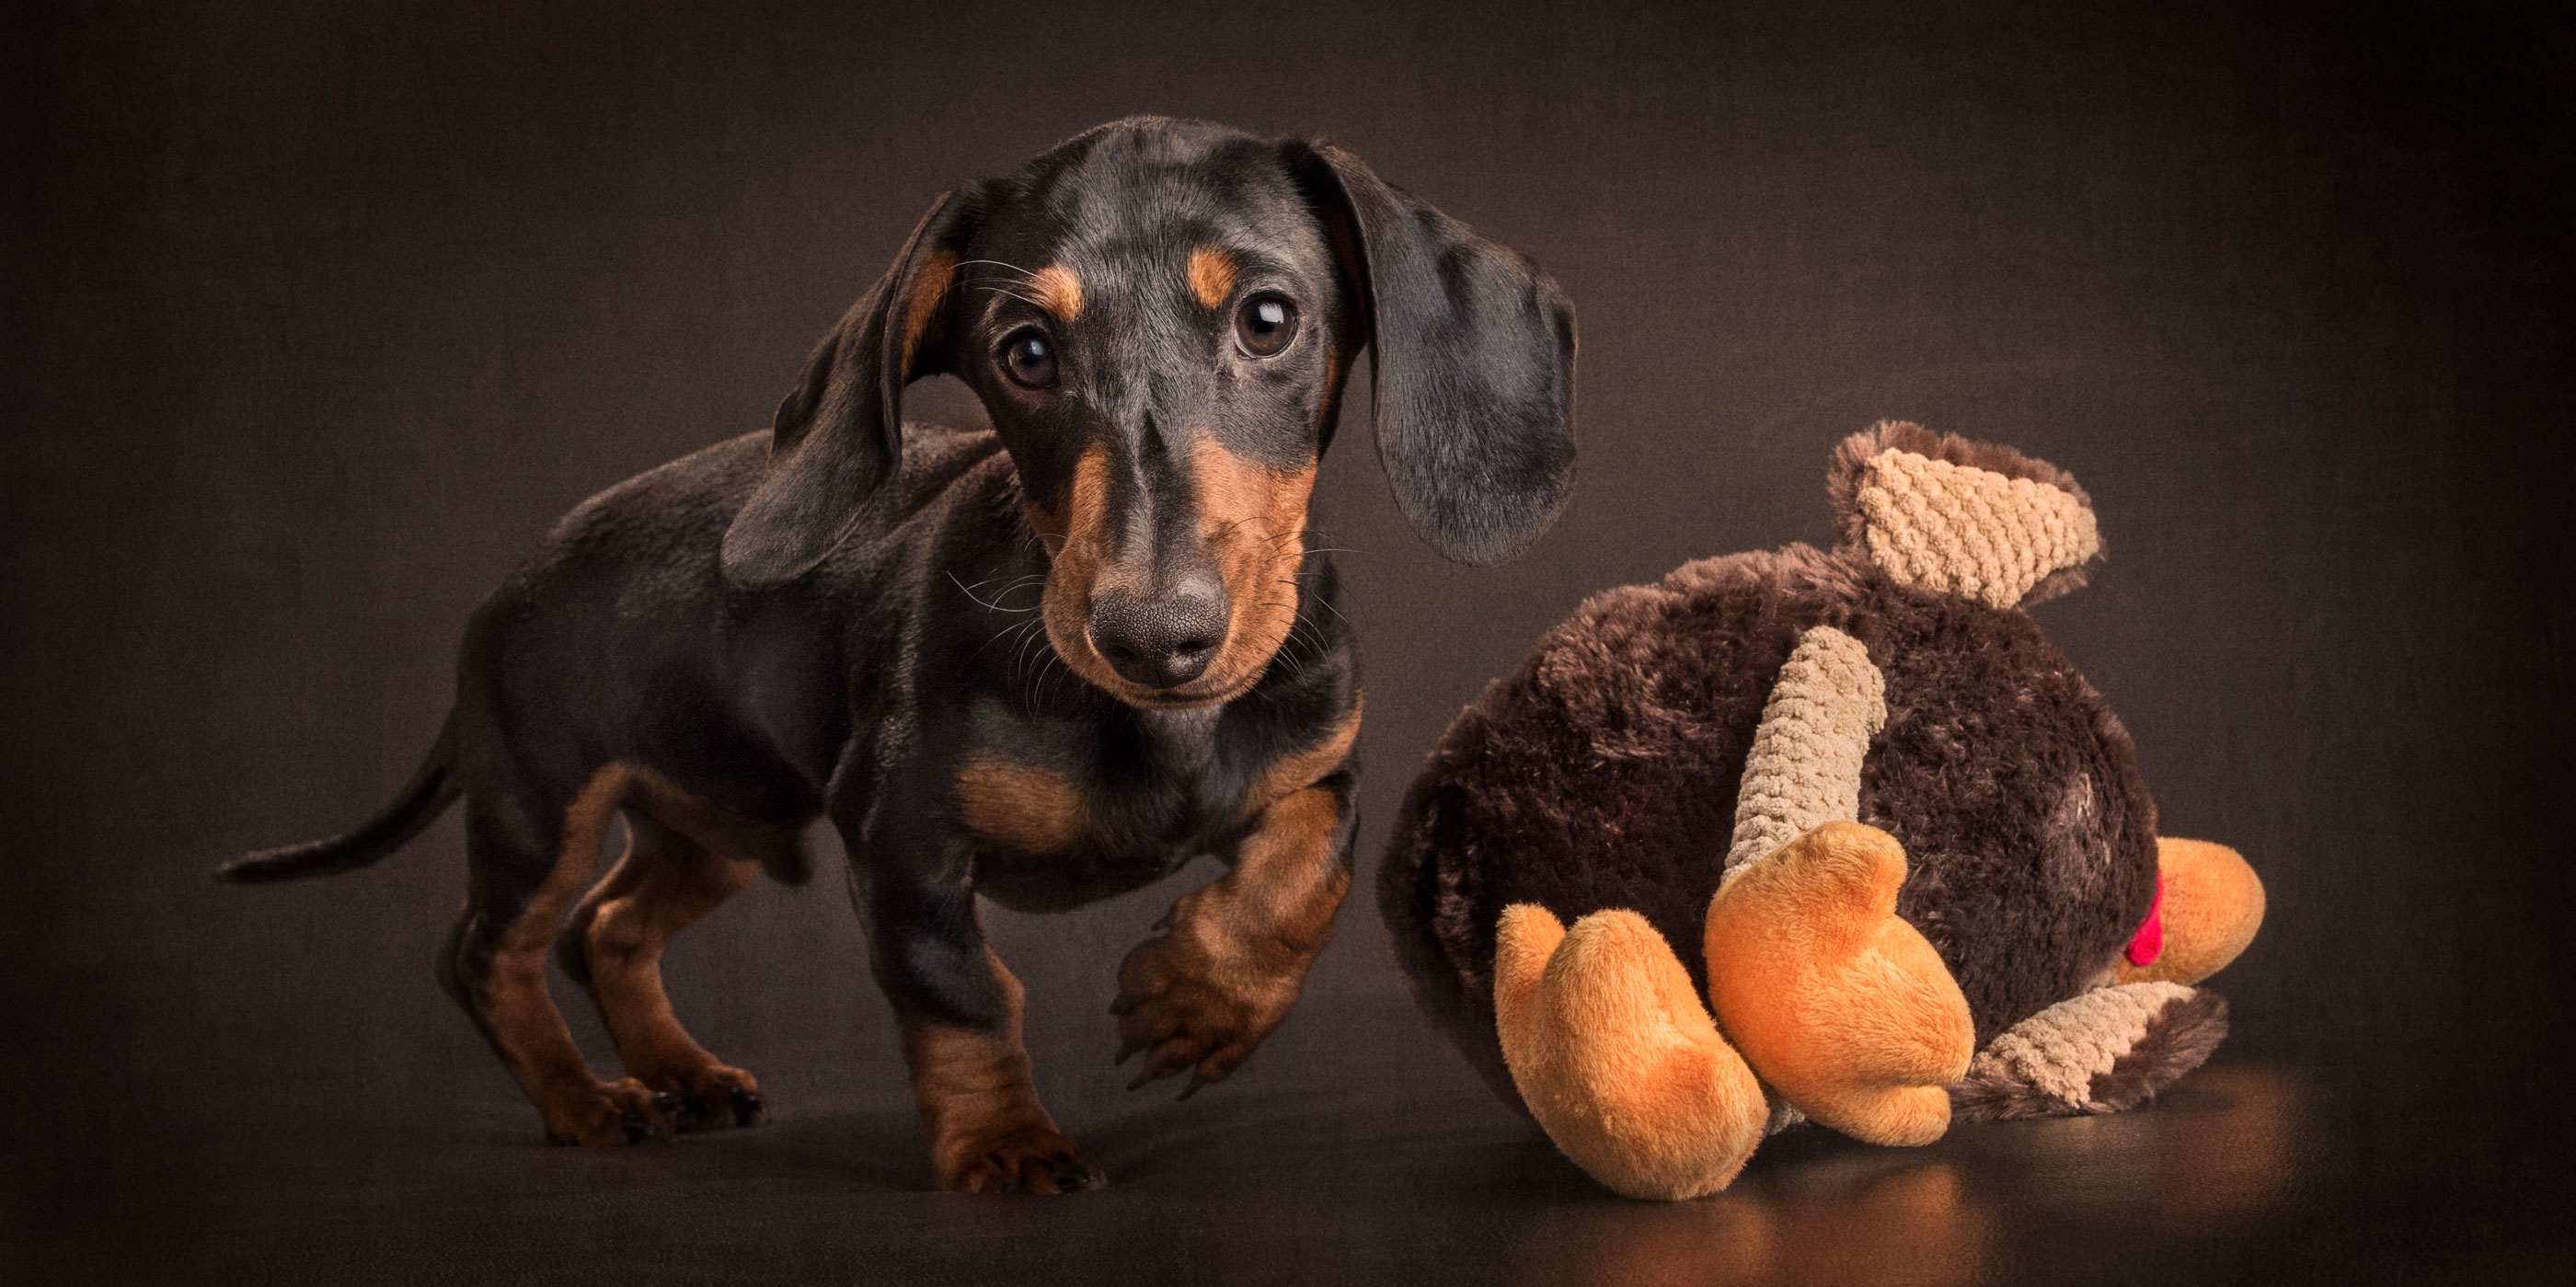 black and tan dachshund running after giant stuffed toy